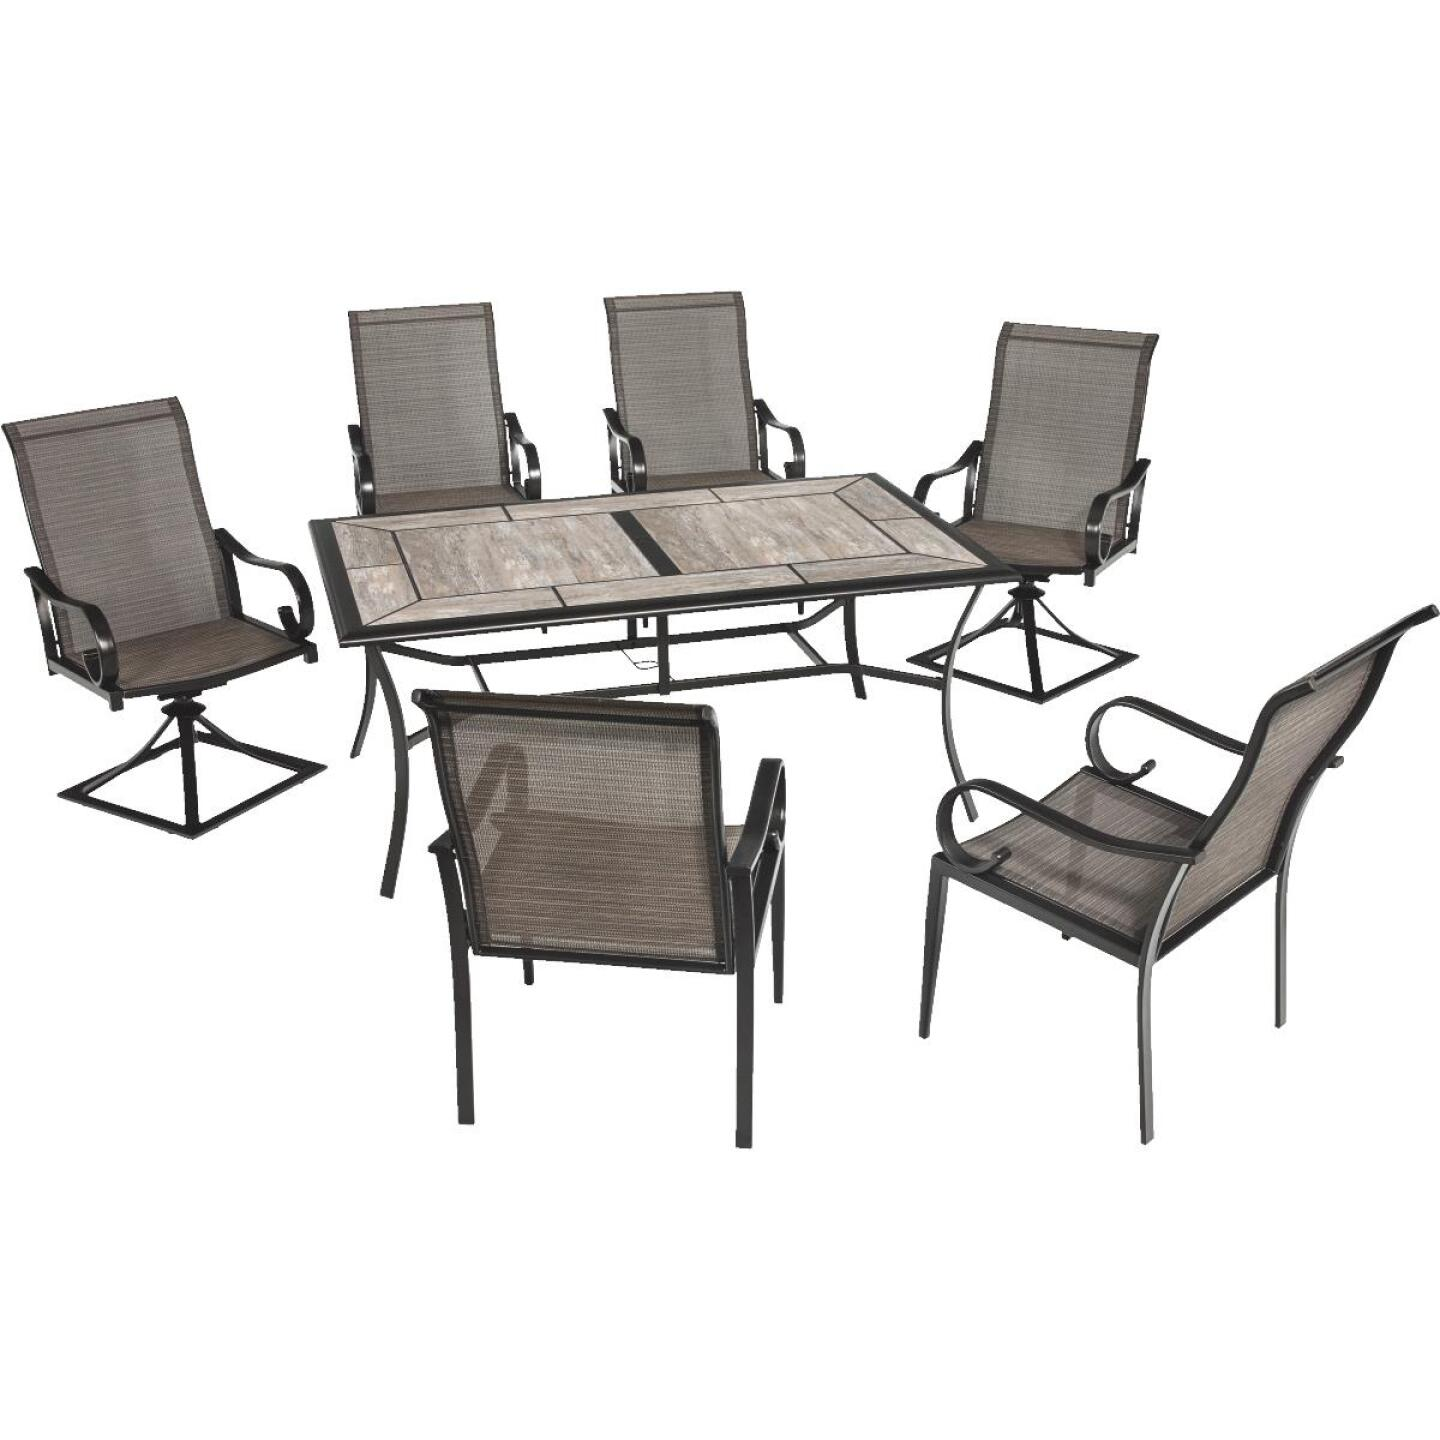 Outdoor Expressions Berkshire 7-Piece Dining Set Image 110